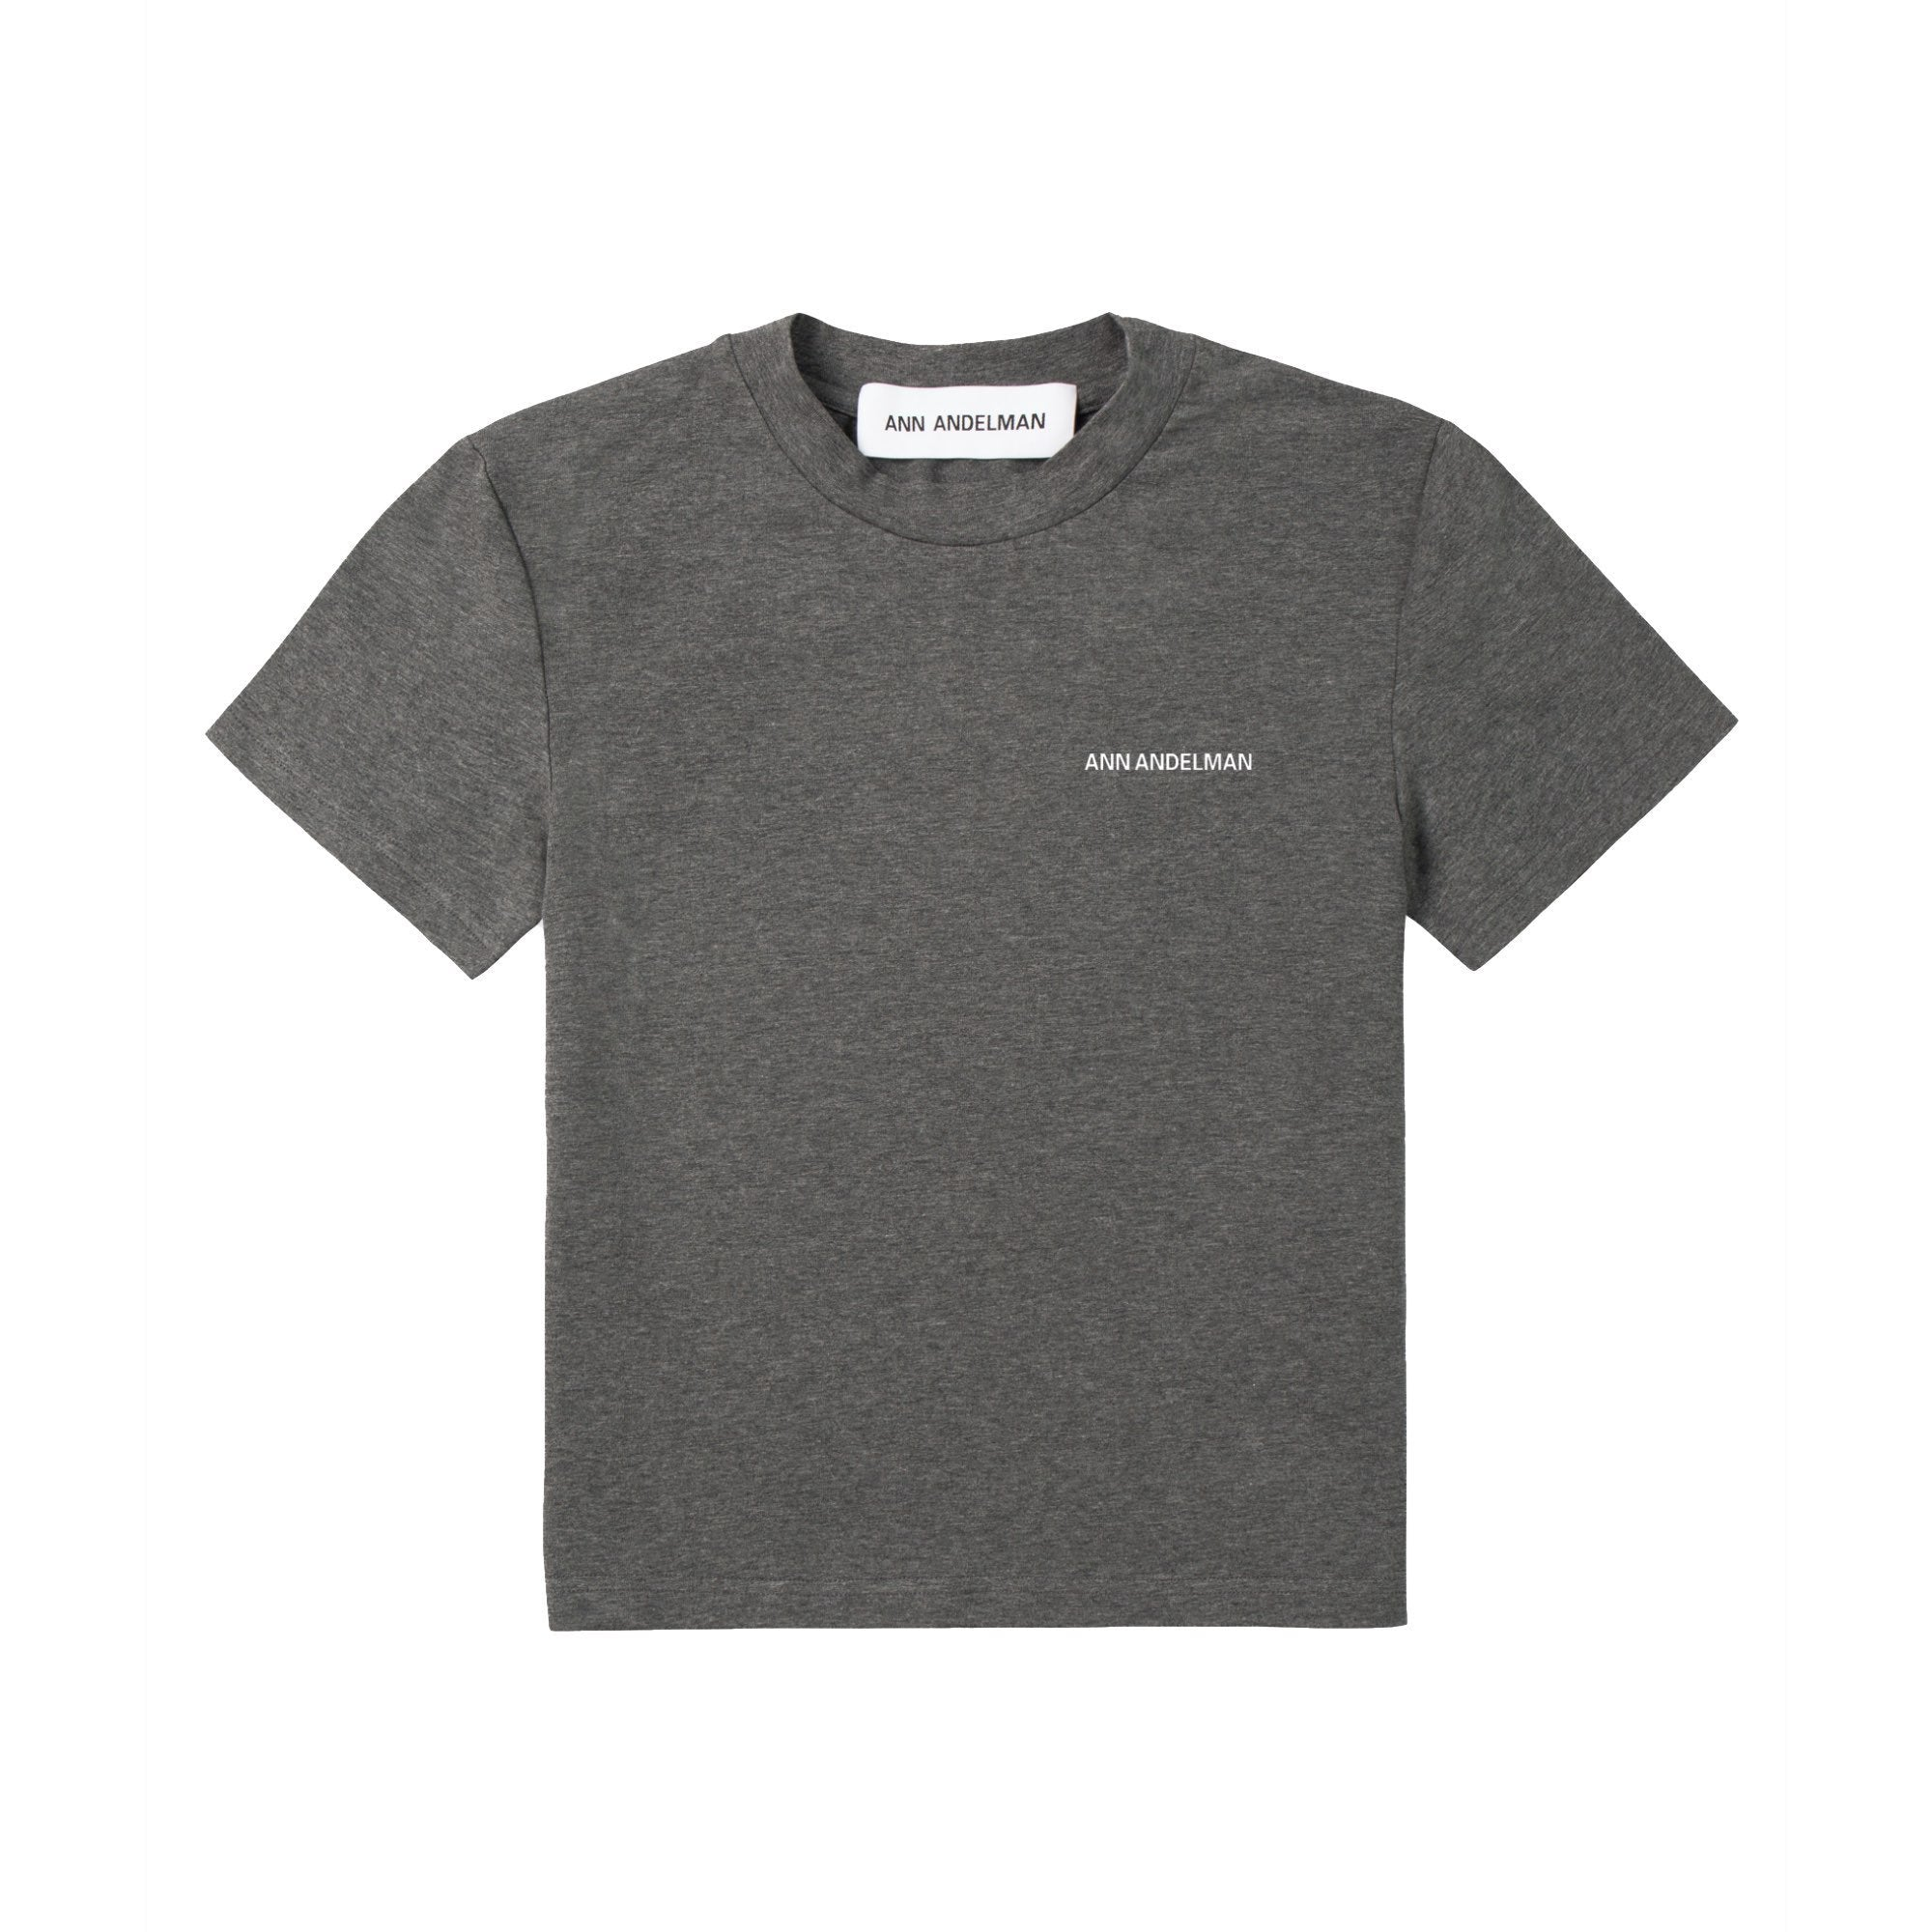 ANN ANDELMAN Grey Small Logo Tee | MADA IN CHINA